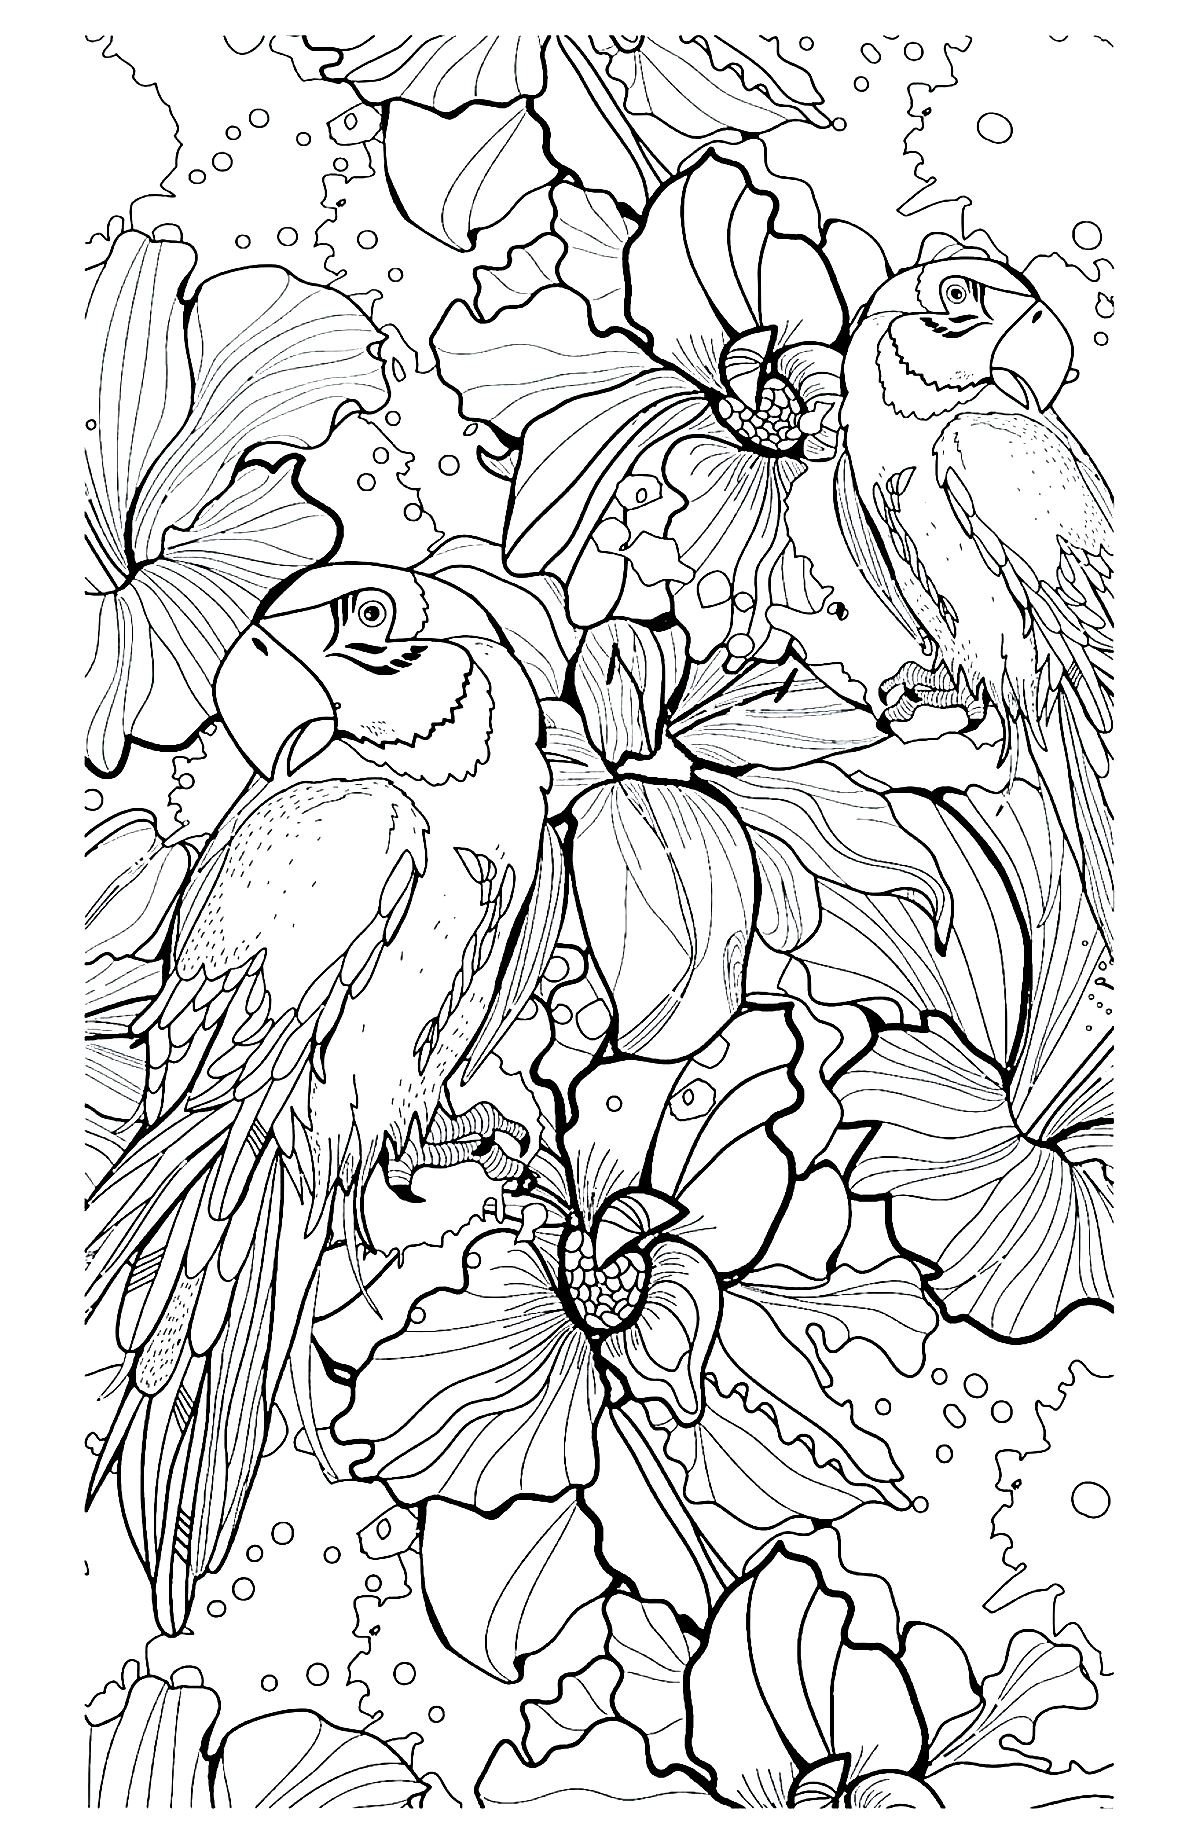 Coloring pictures for adults - Complex Coloring Page Of Parrots From The Gallery Animals